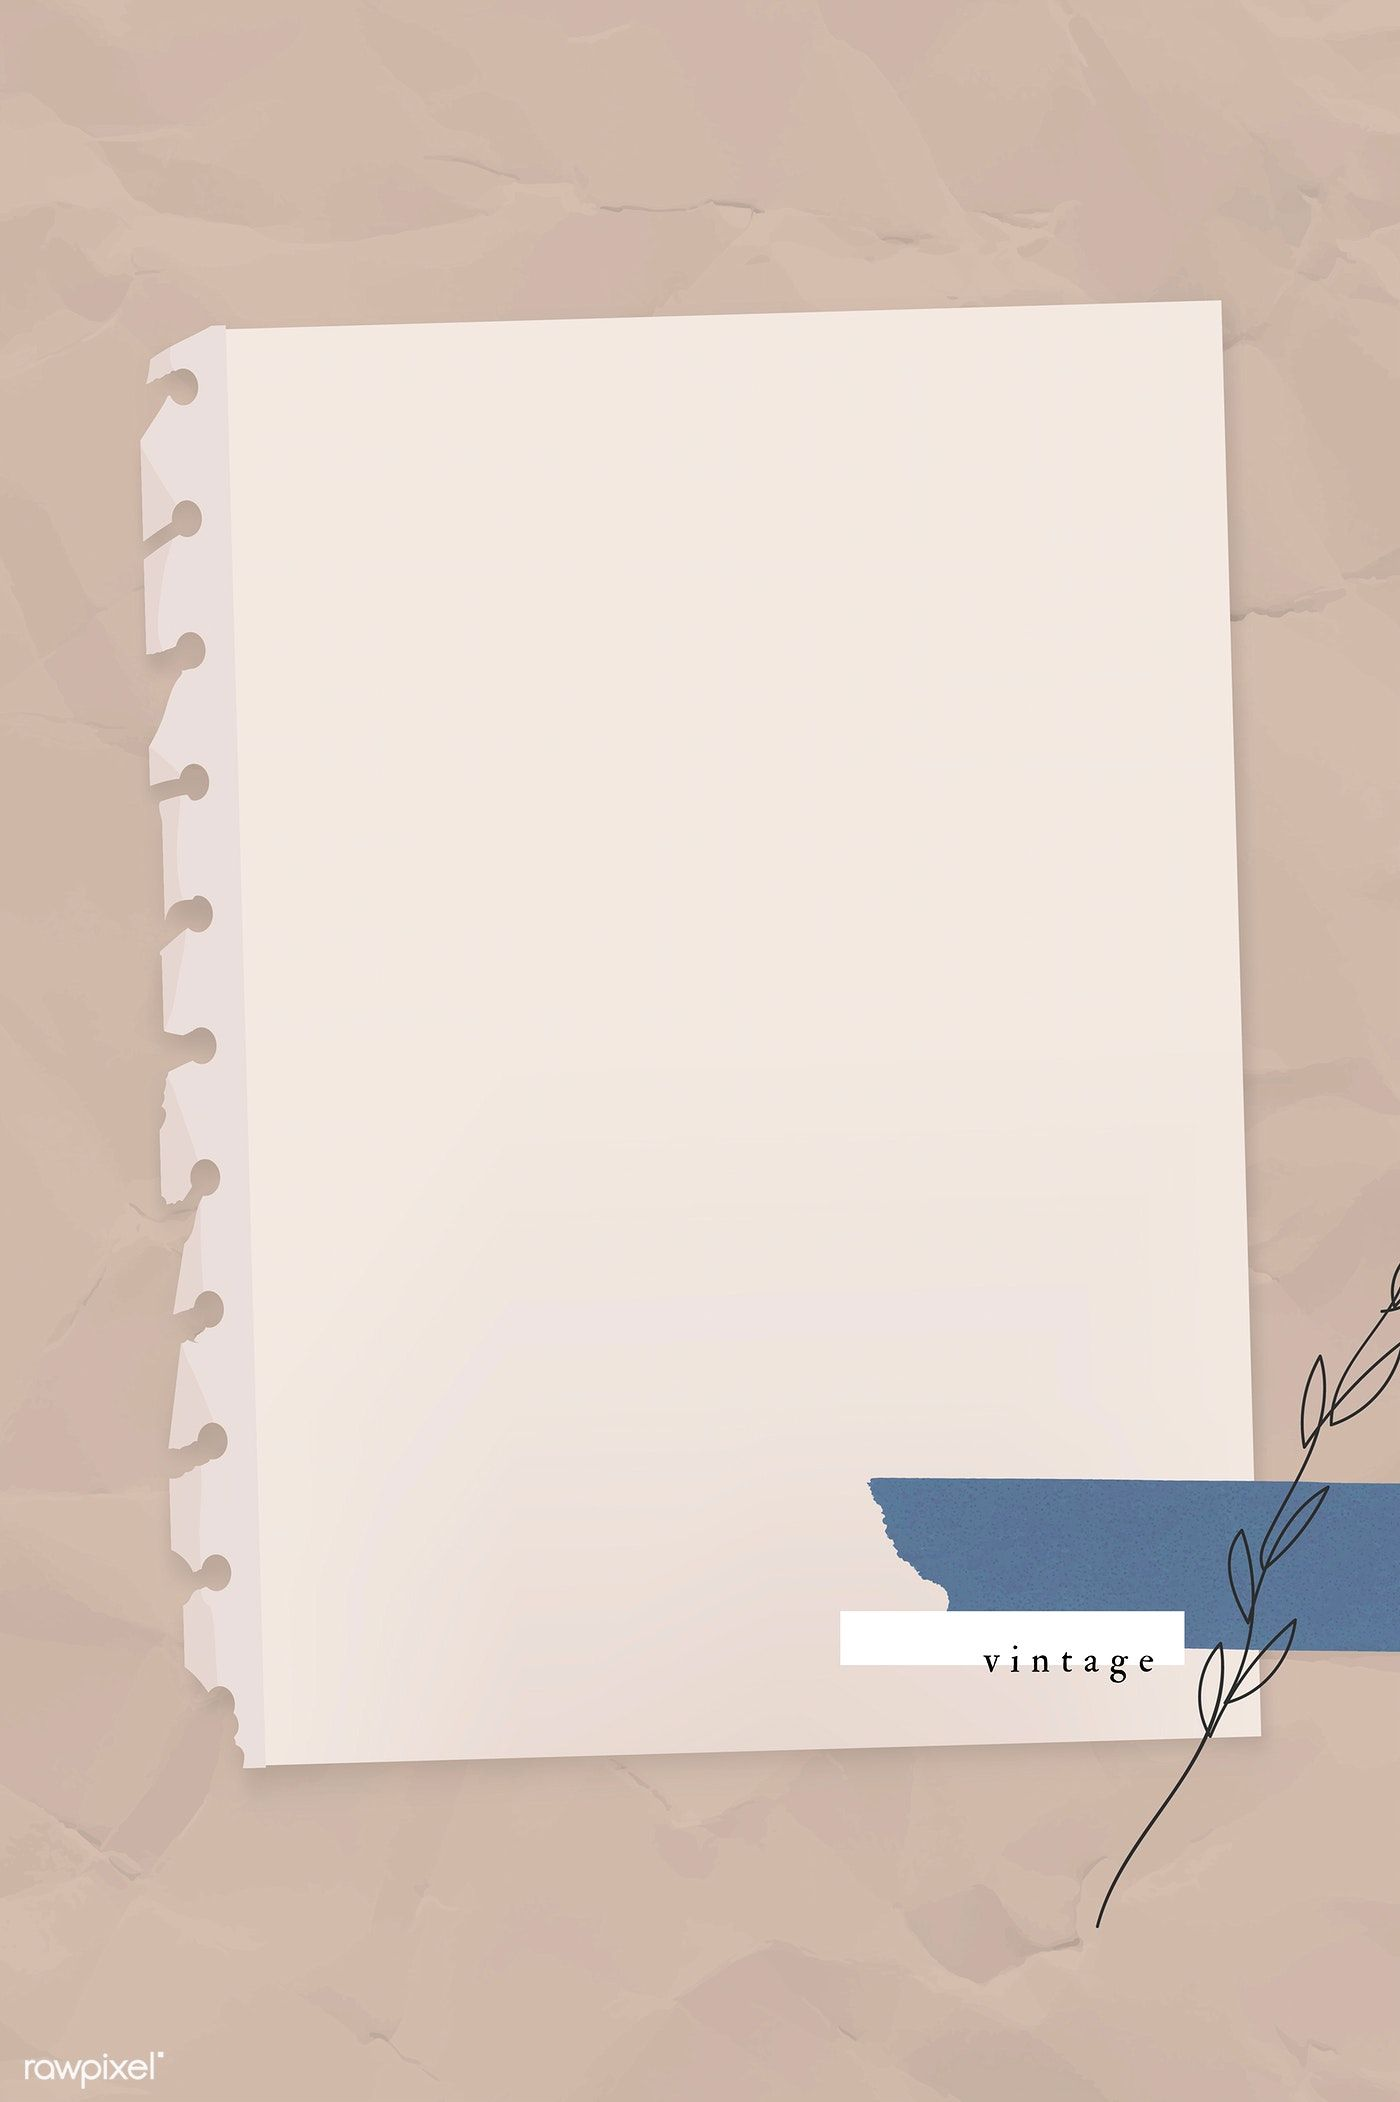 Download premium vector of Blank ripped paper with washi tape template vector by Ning about collage, notepad collage, board, ripped paper, and craft paper mockup 1205044